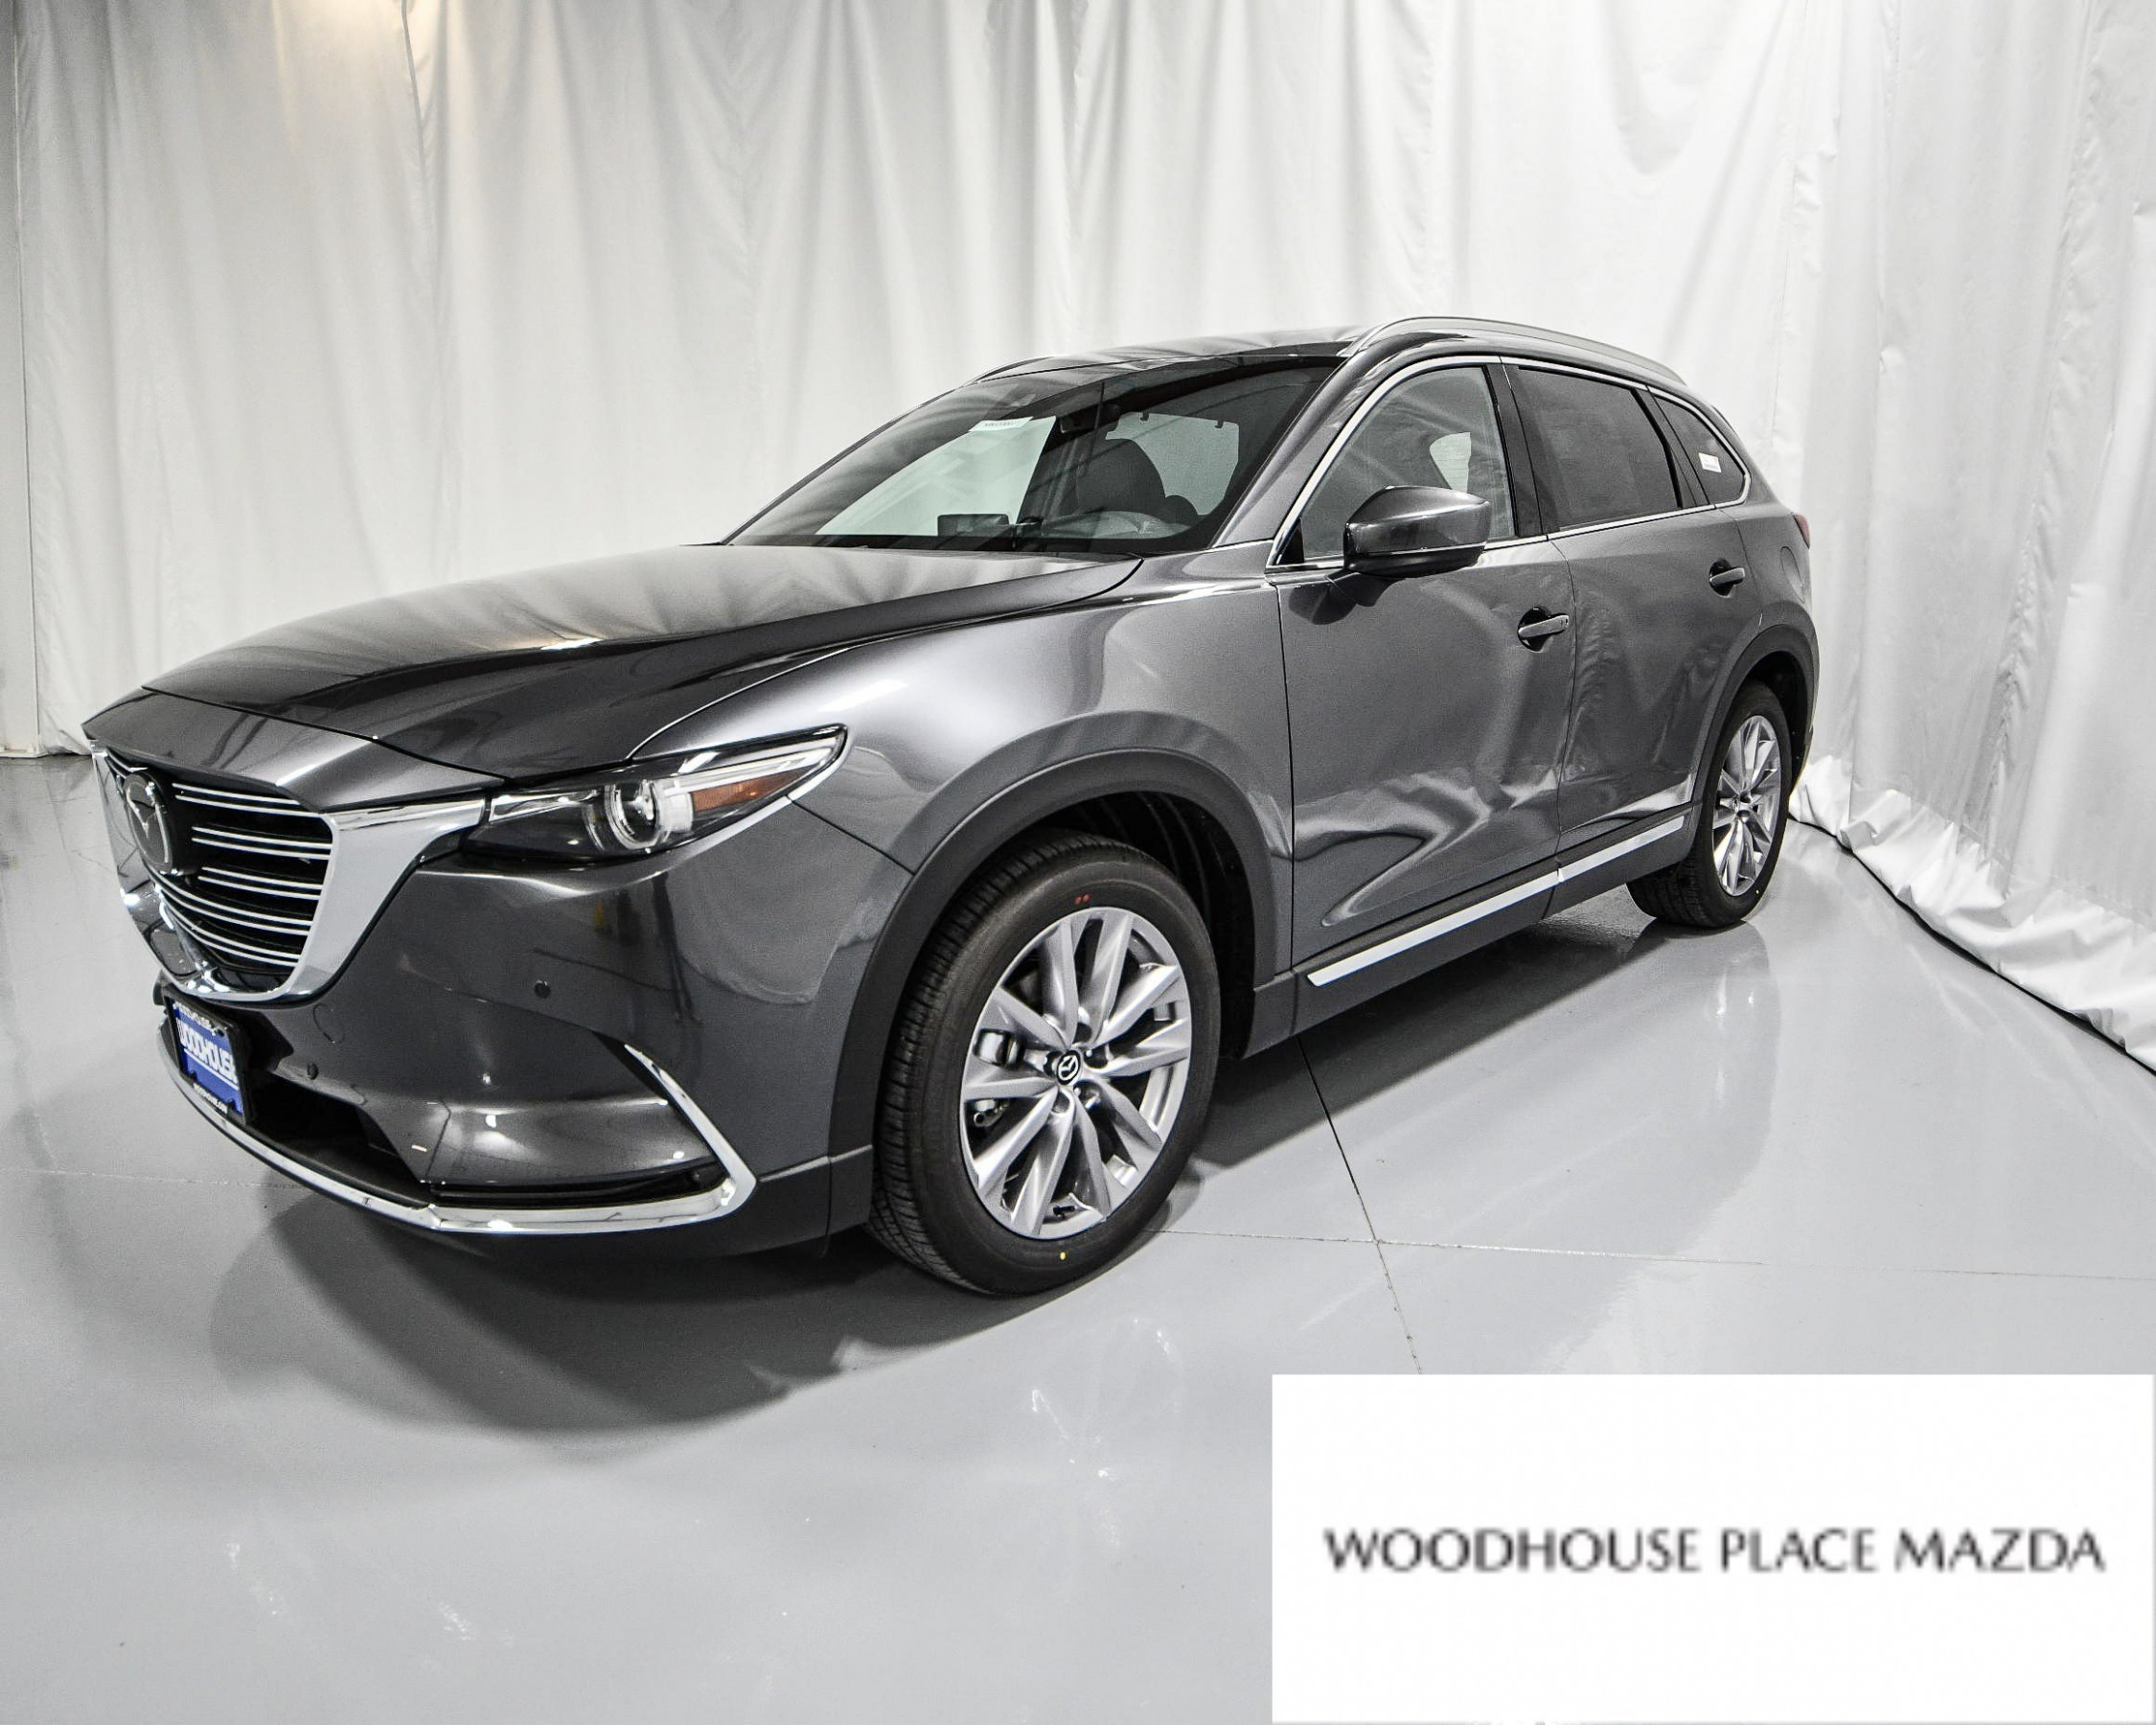 New 11 Mazda CX-11 Grand Touring With Navigation & AWD - 2020 mazda cx-9